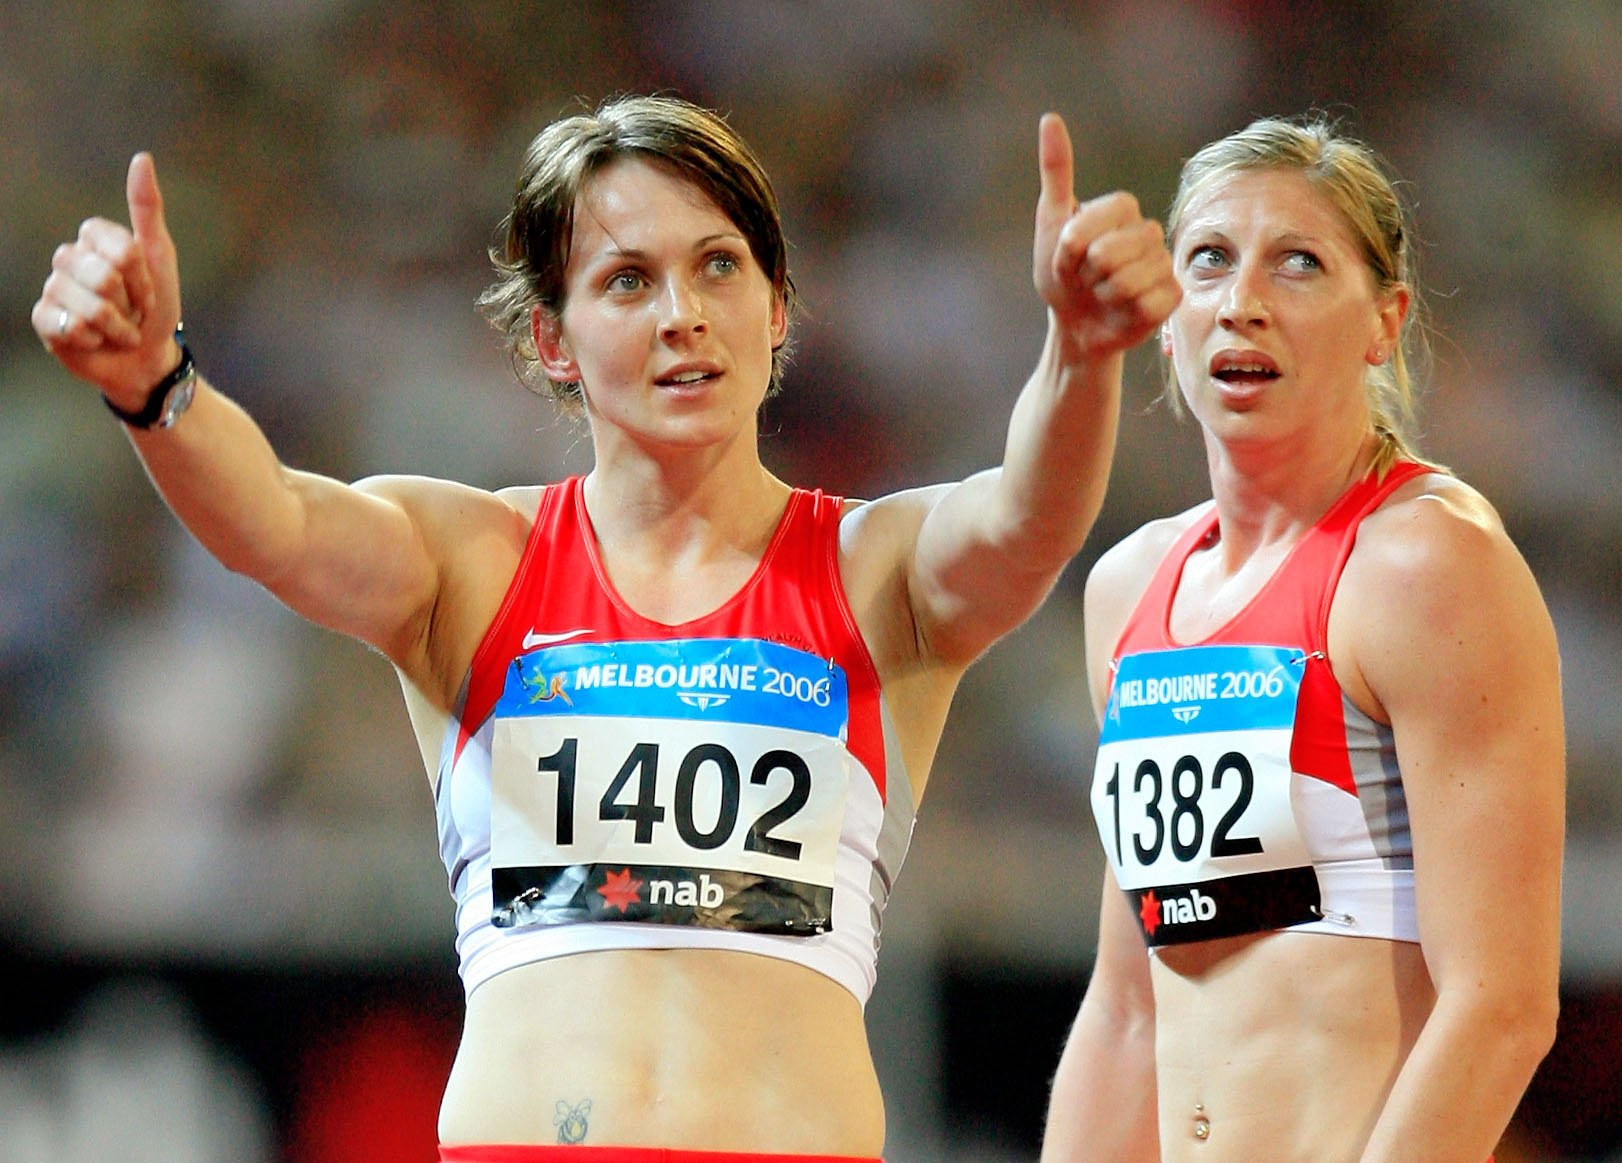 """Kelly Sotherton, who won heptathlon gold at the 2006 Commonwealth Games, has said it is a """"dream come true"""" to lead England's track and field team ©Getty Images"""